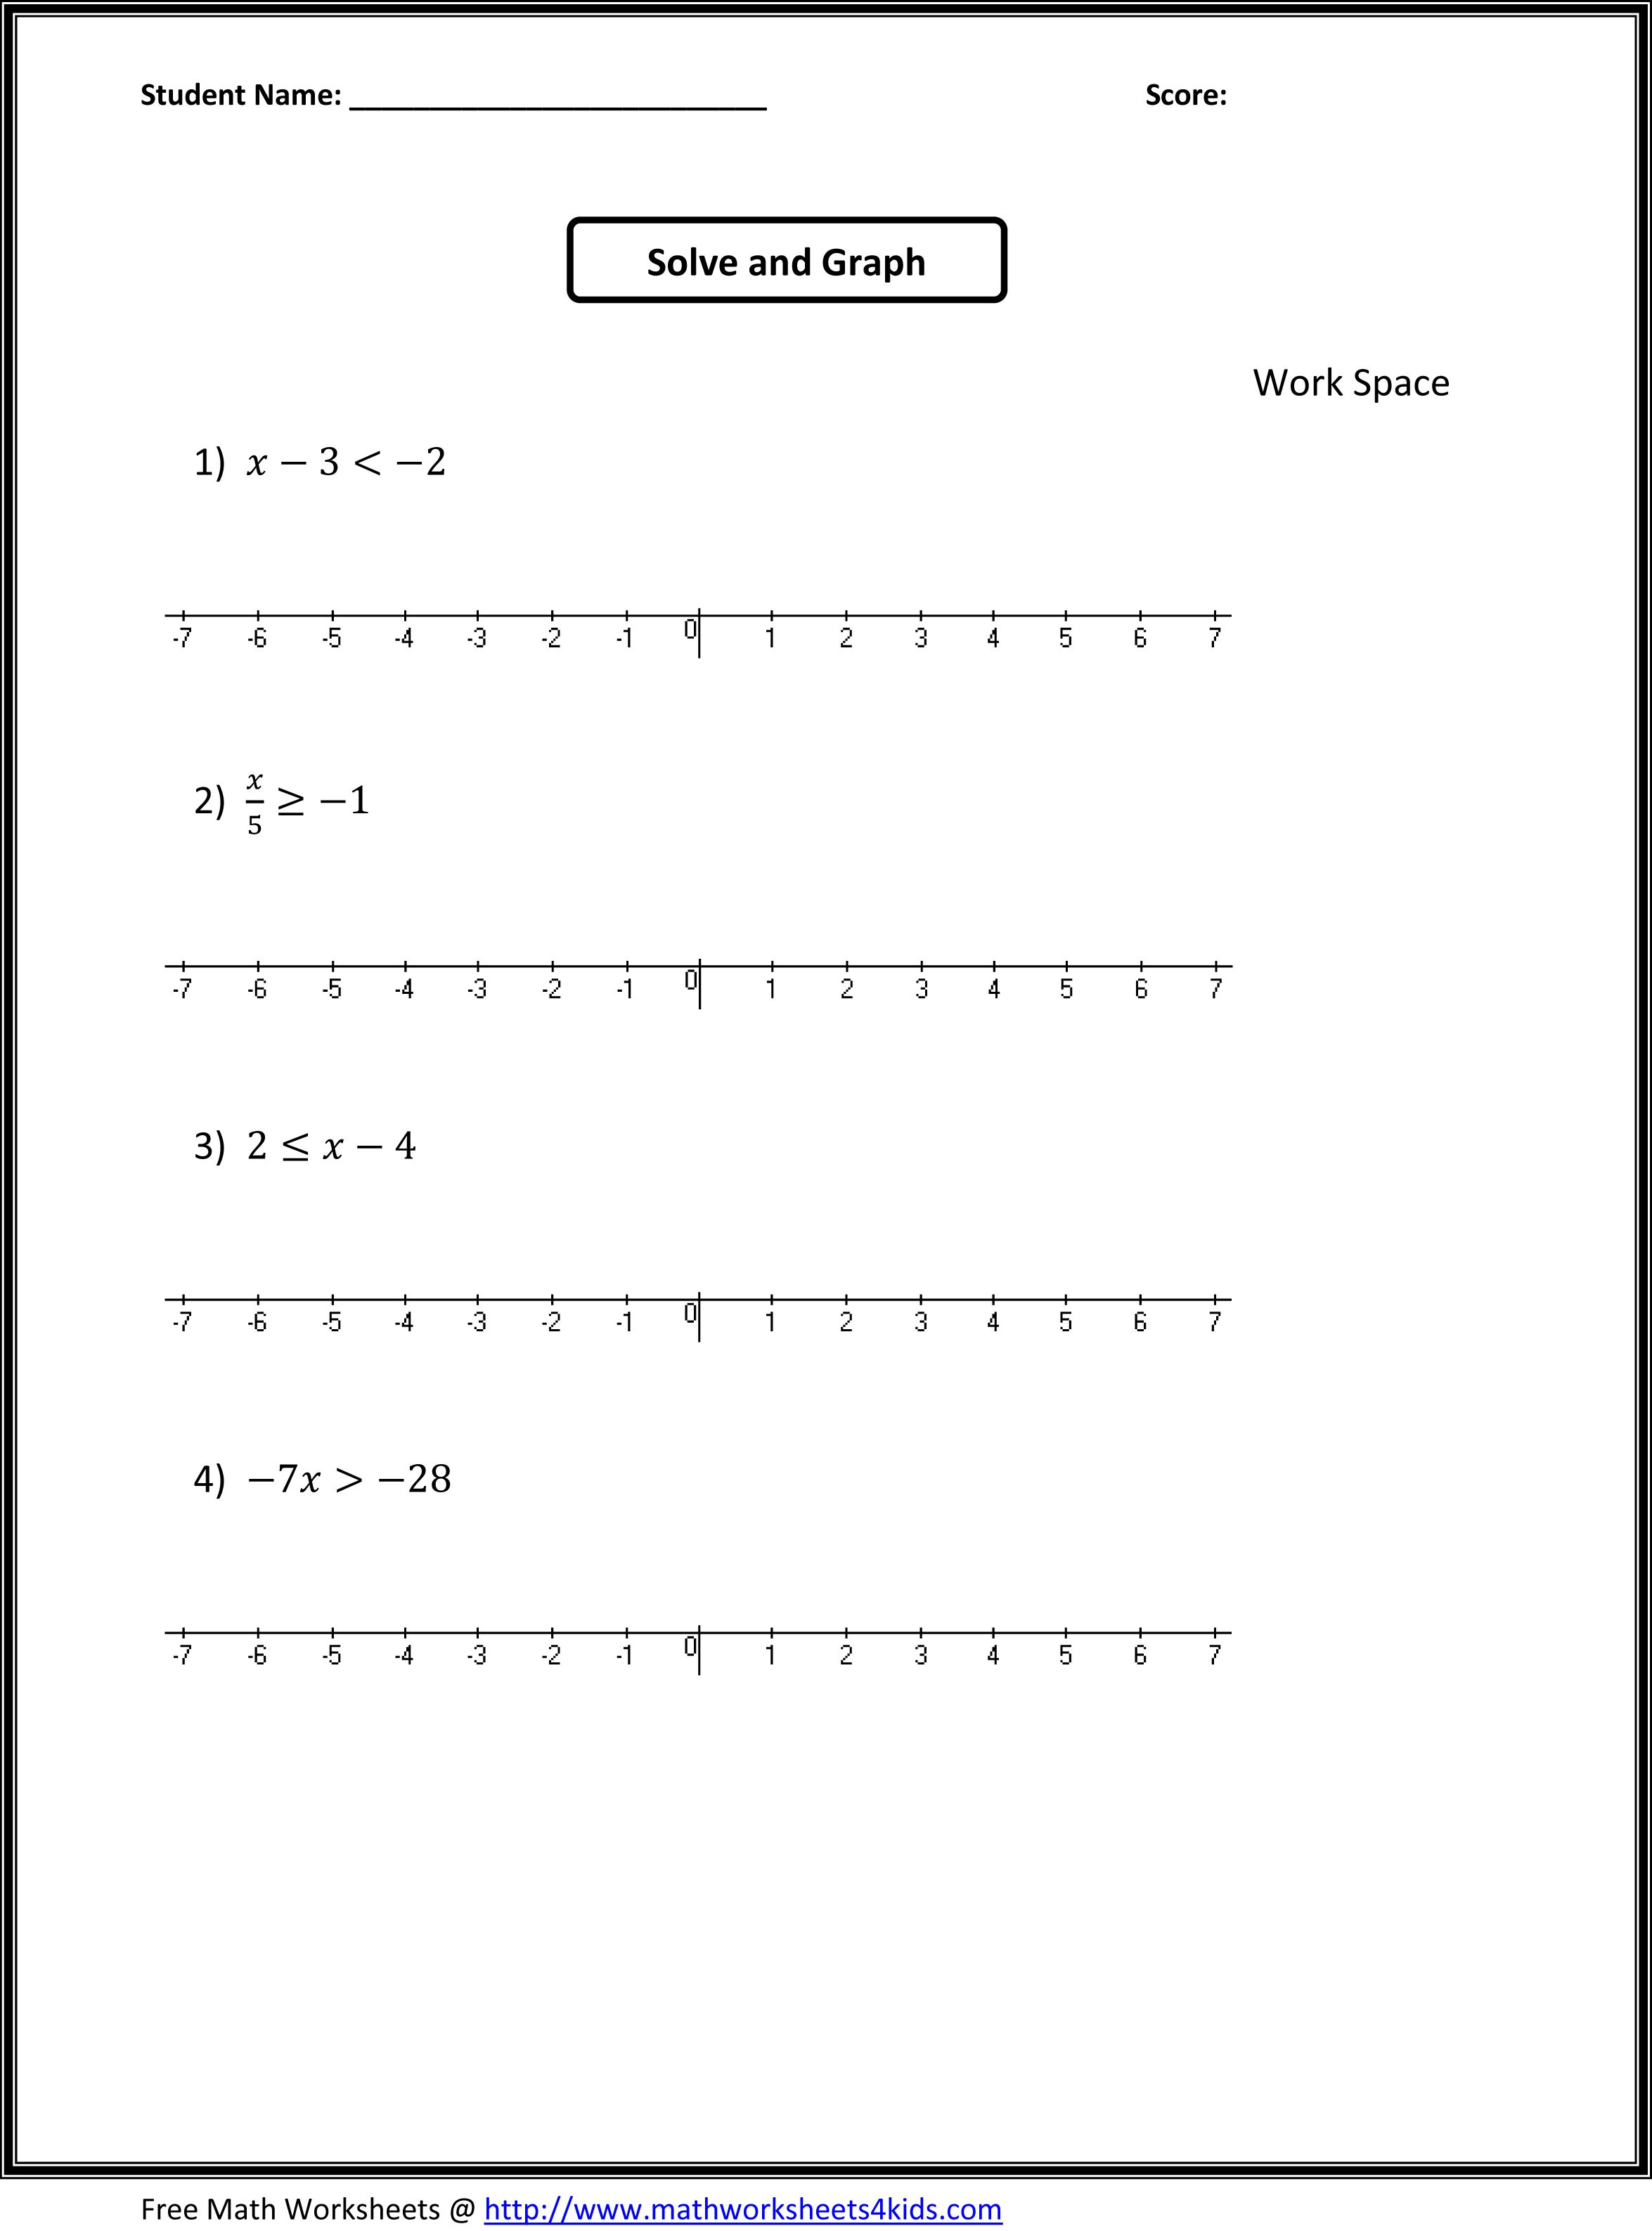 Printables Math Worksheets For 7th Grade printable 7th grade math worksheets syndeomedia 1000 images about on pinterest activities fractions worksheets